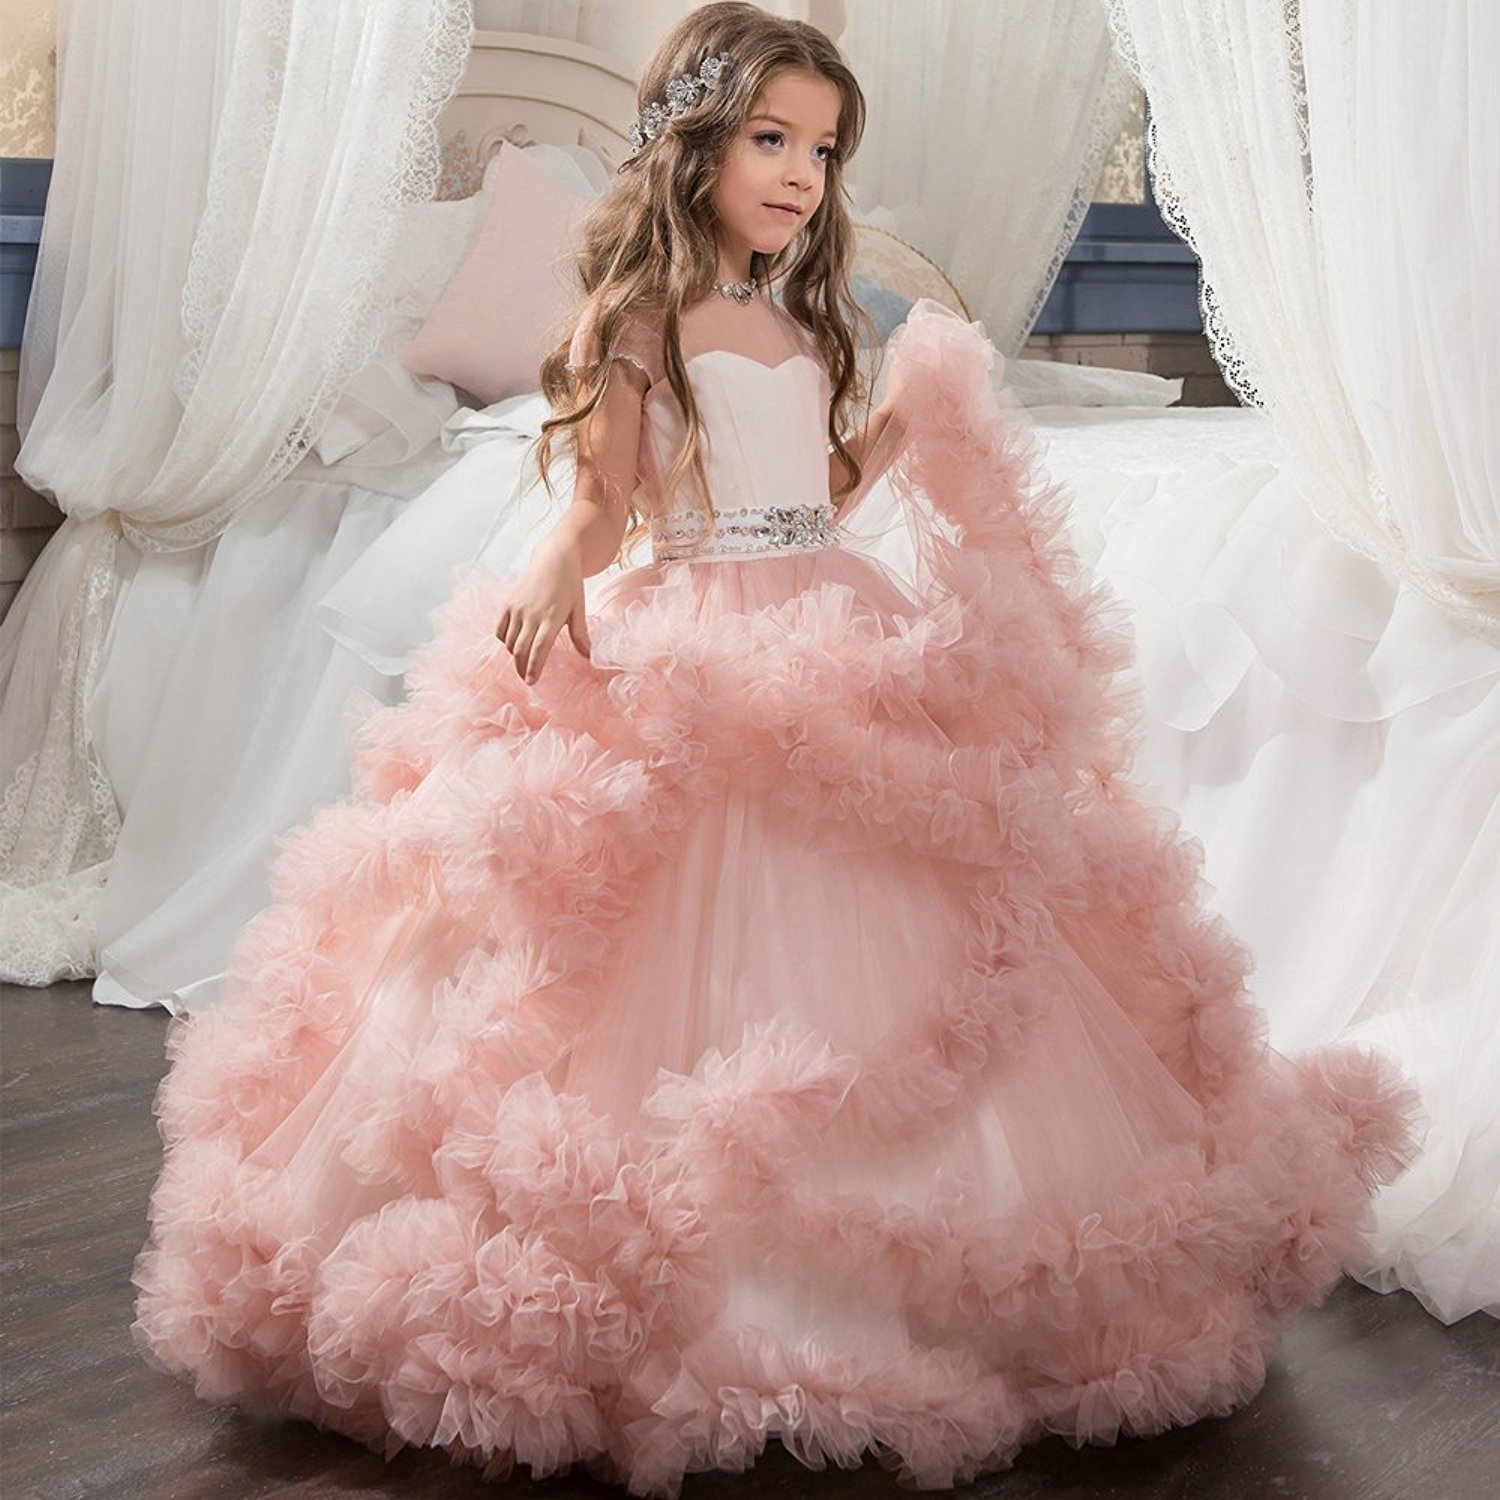 Wedding Flower Girl: Teenage Girls Clothing 12 Years Dresses For Party And